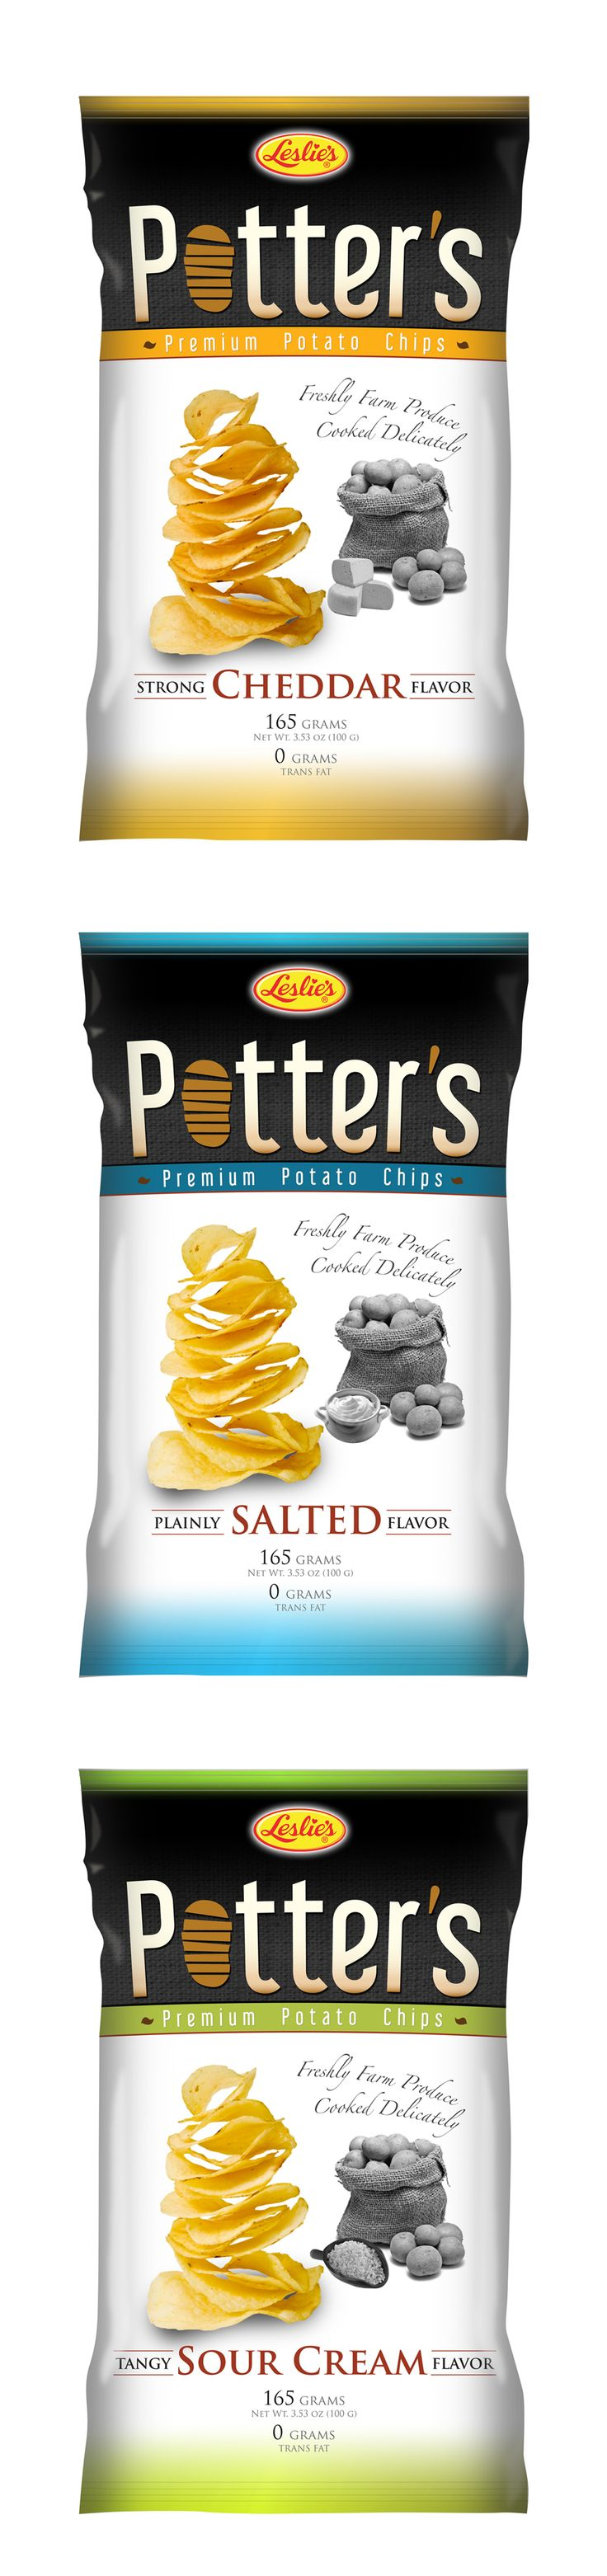 Potato chips packaging design concept (2011) that never made it to the shelves…